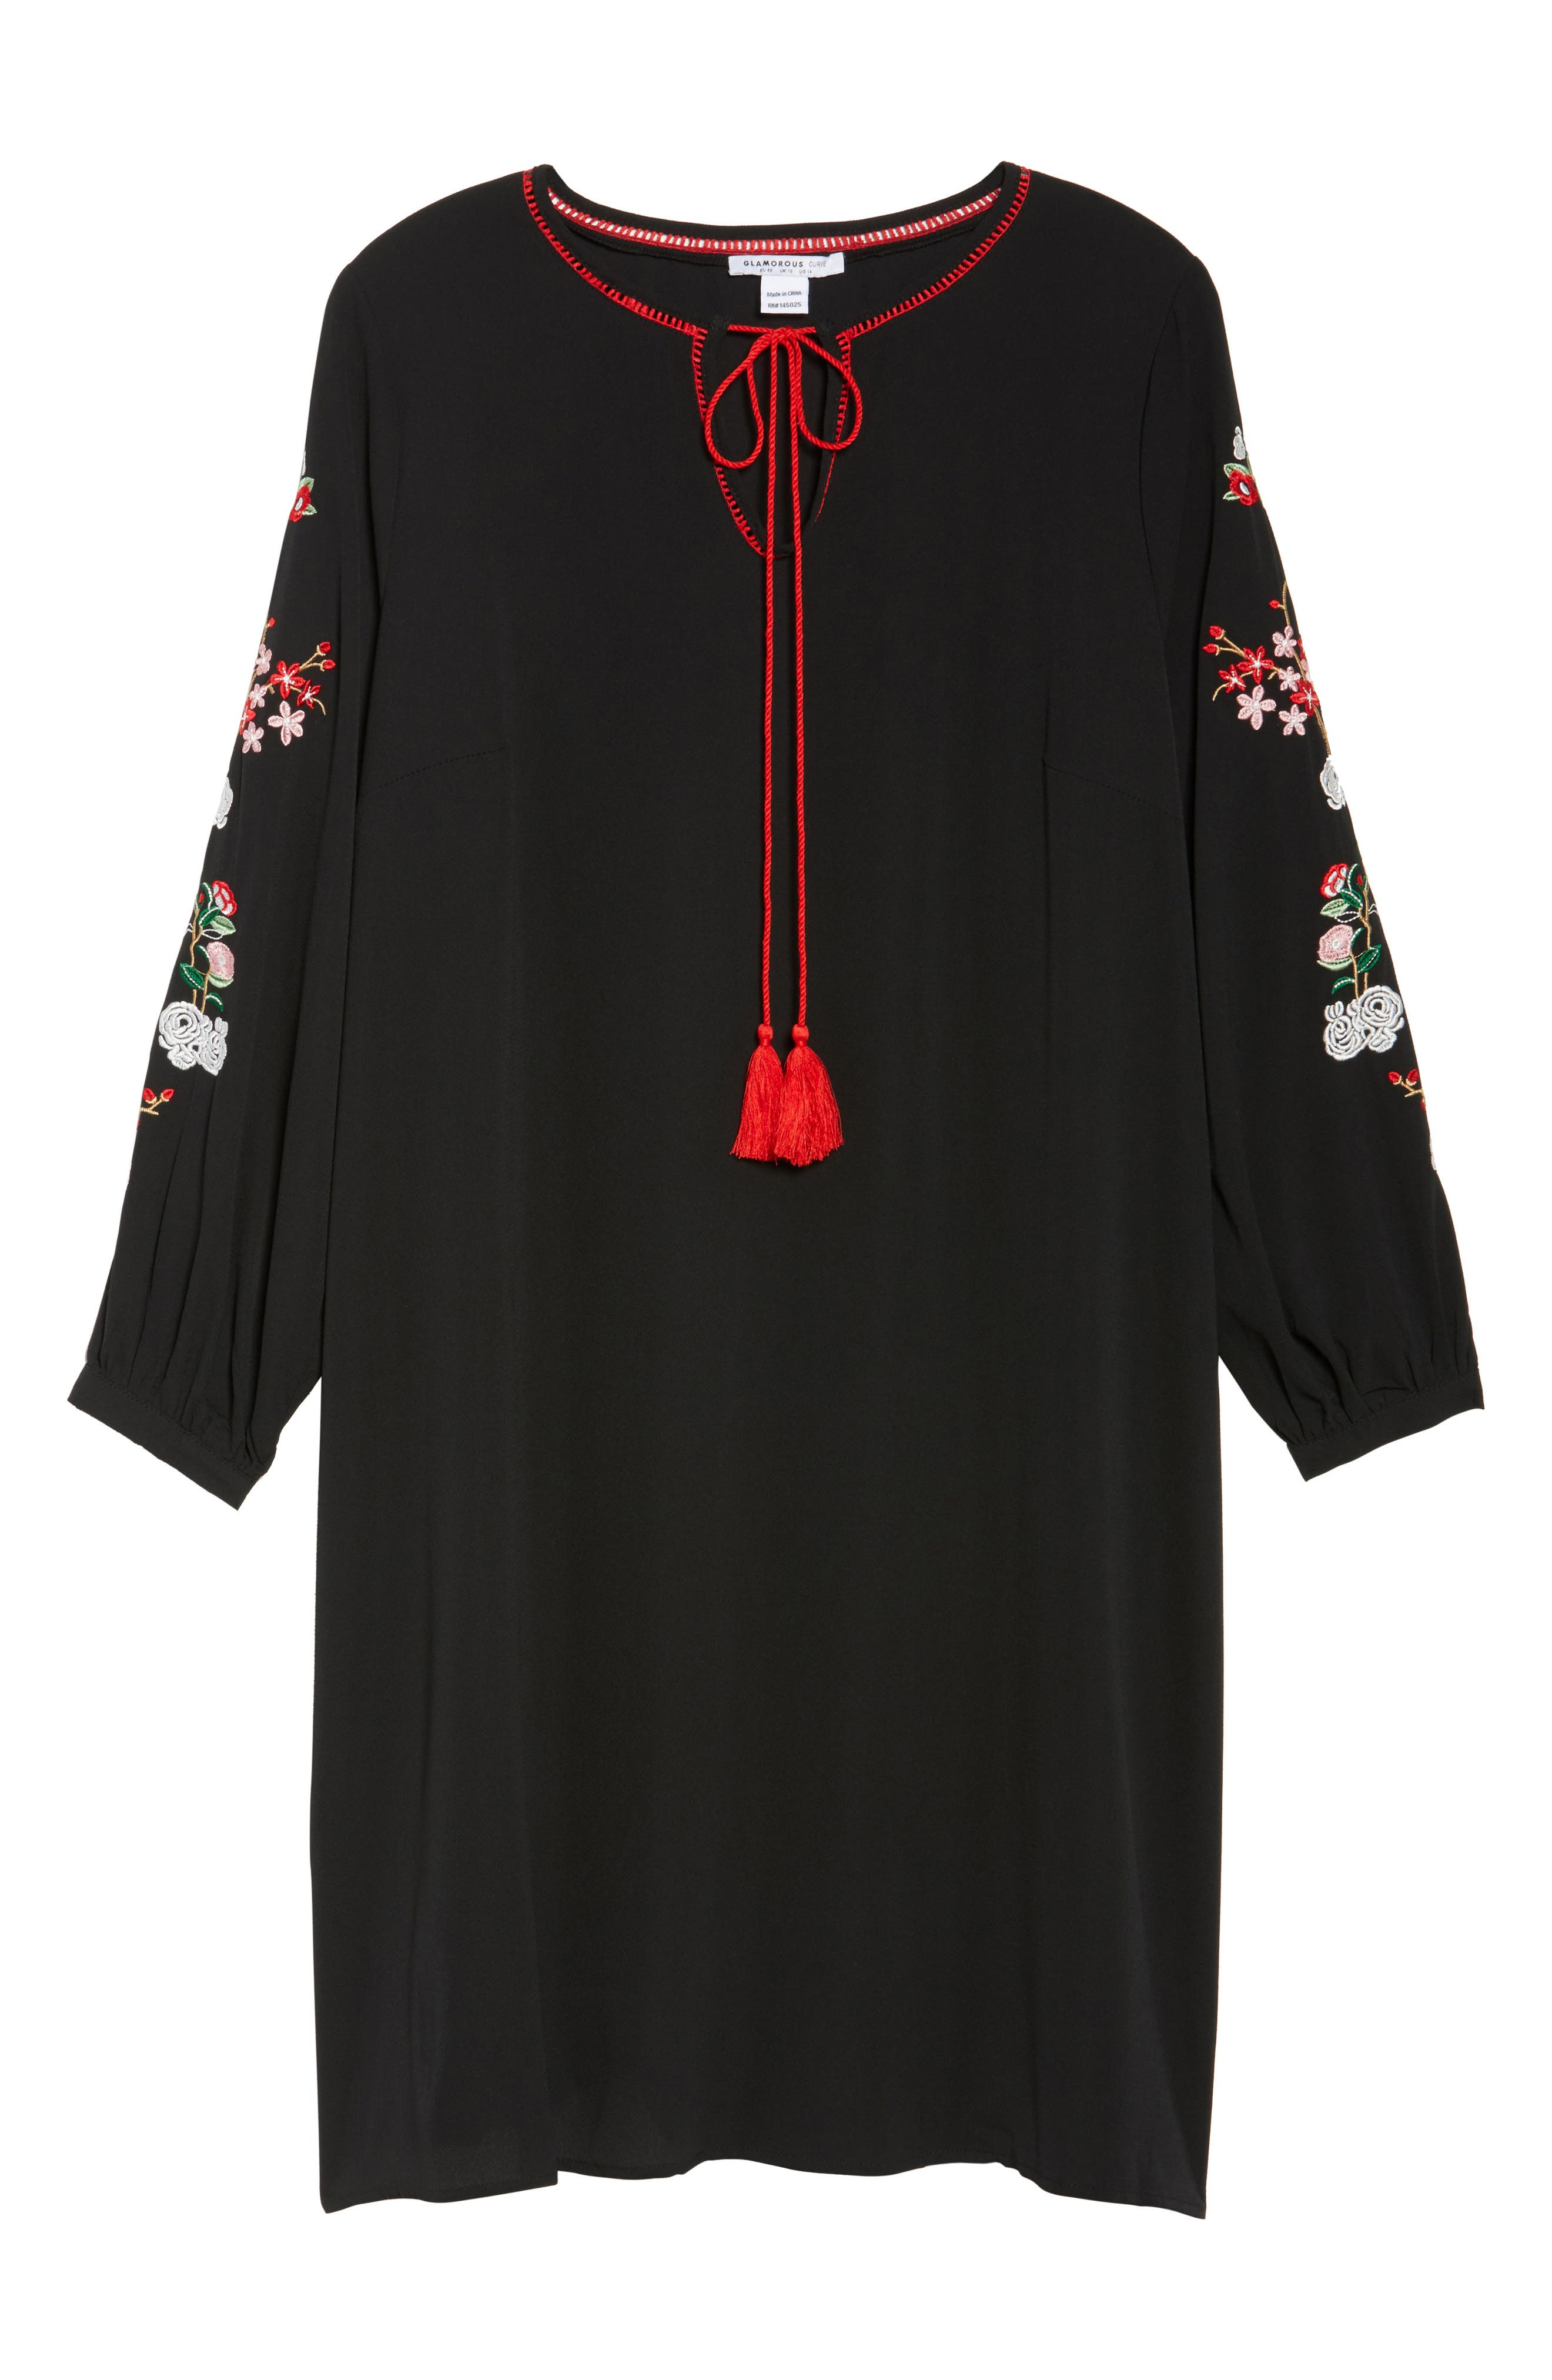 Floral Embroidered Shift Dress,                             Alternate thumbnail 6, color,                             001